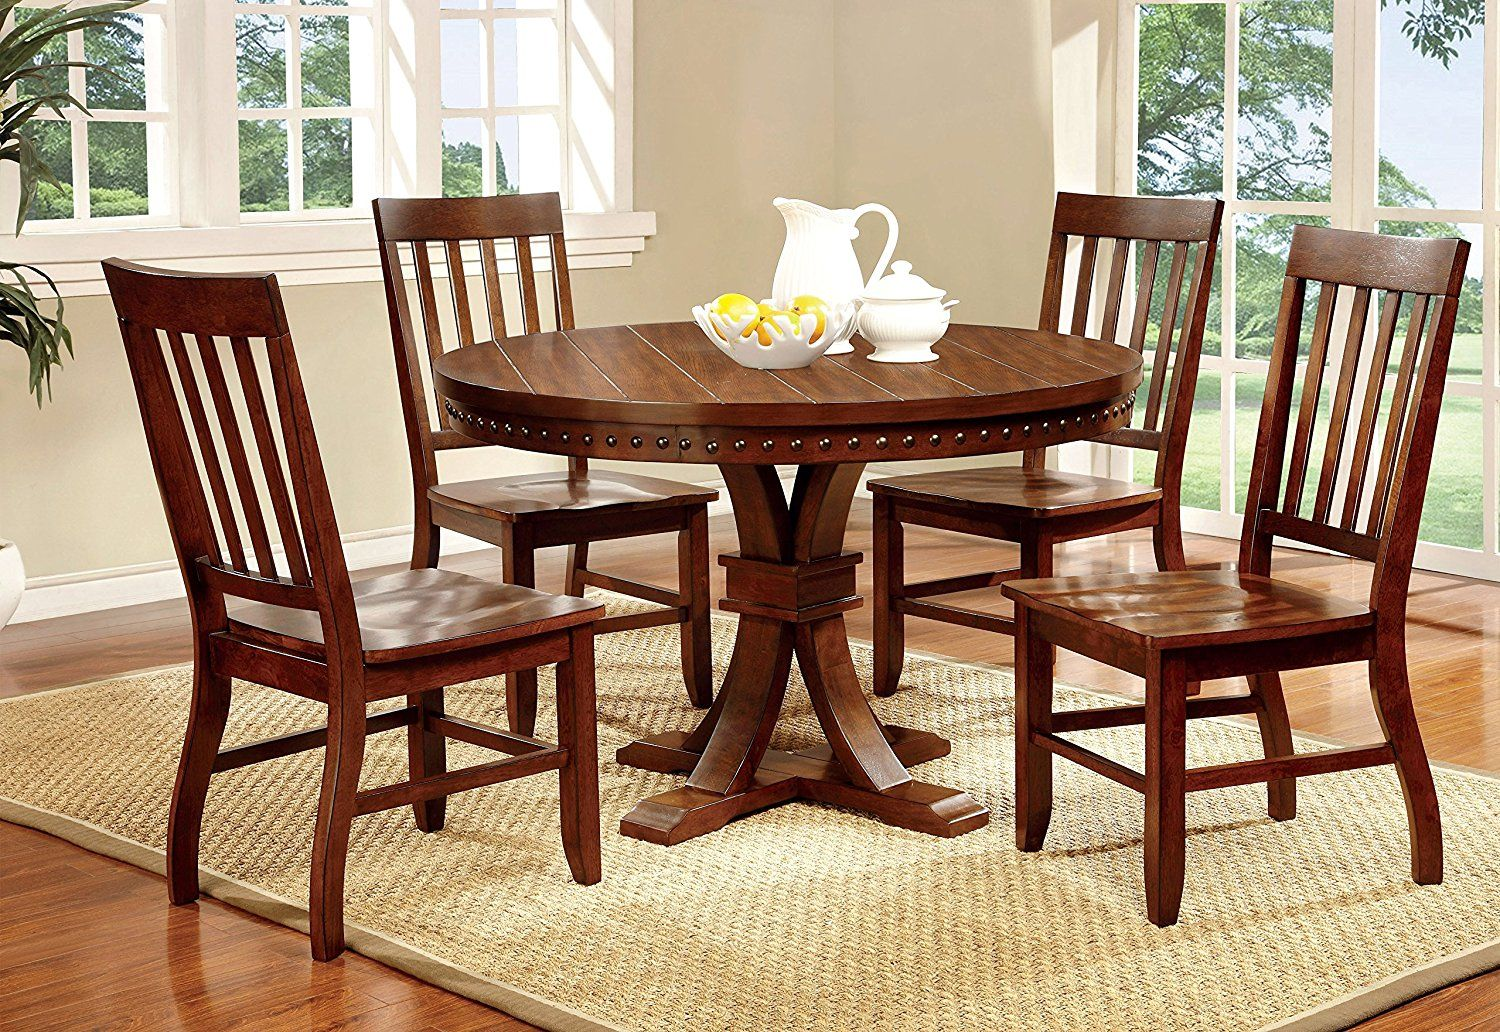 dining room design with castile transitional round dining table